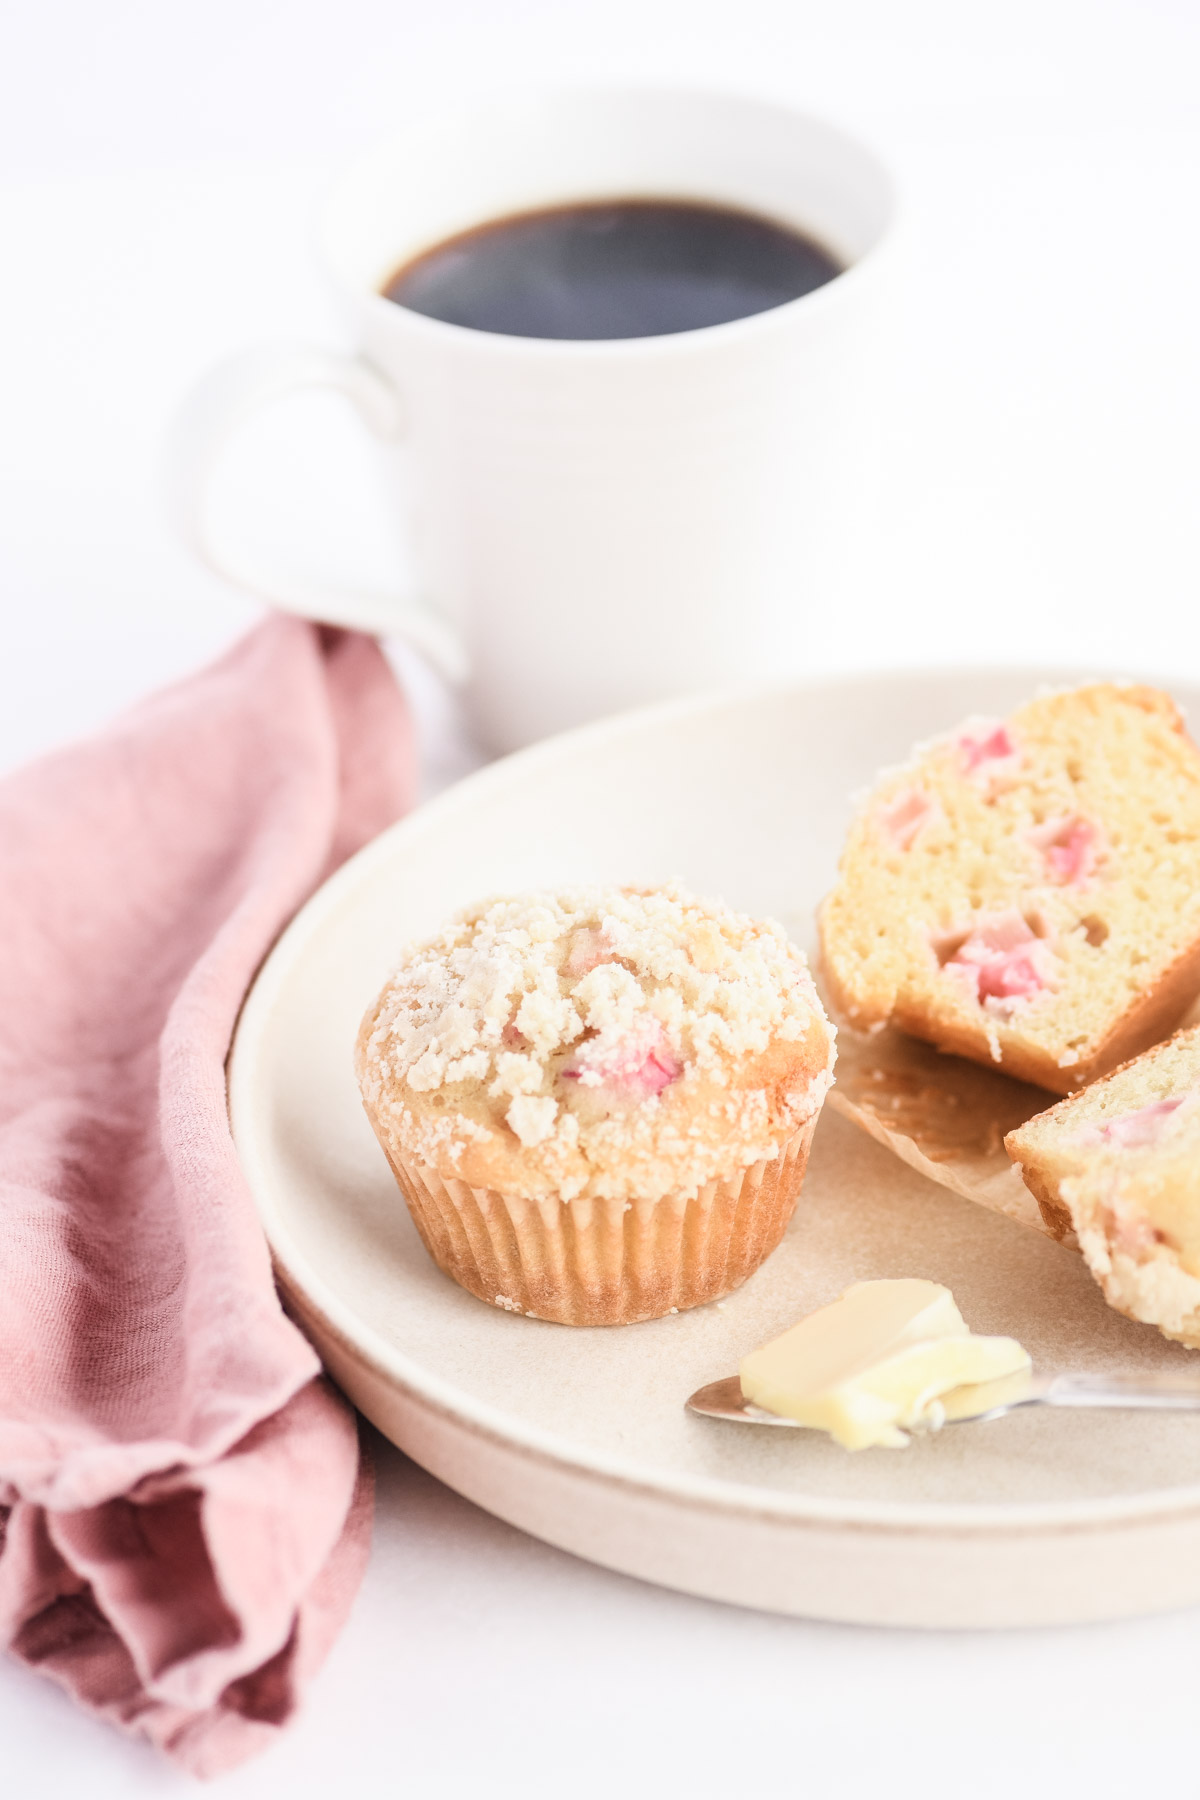 Rhubarb muffins with a cup of coffee